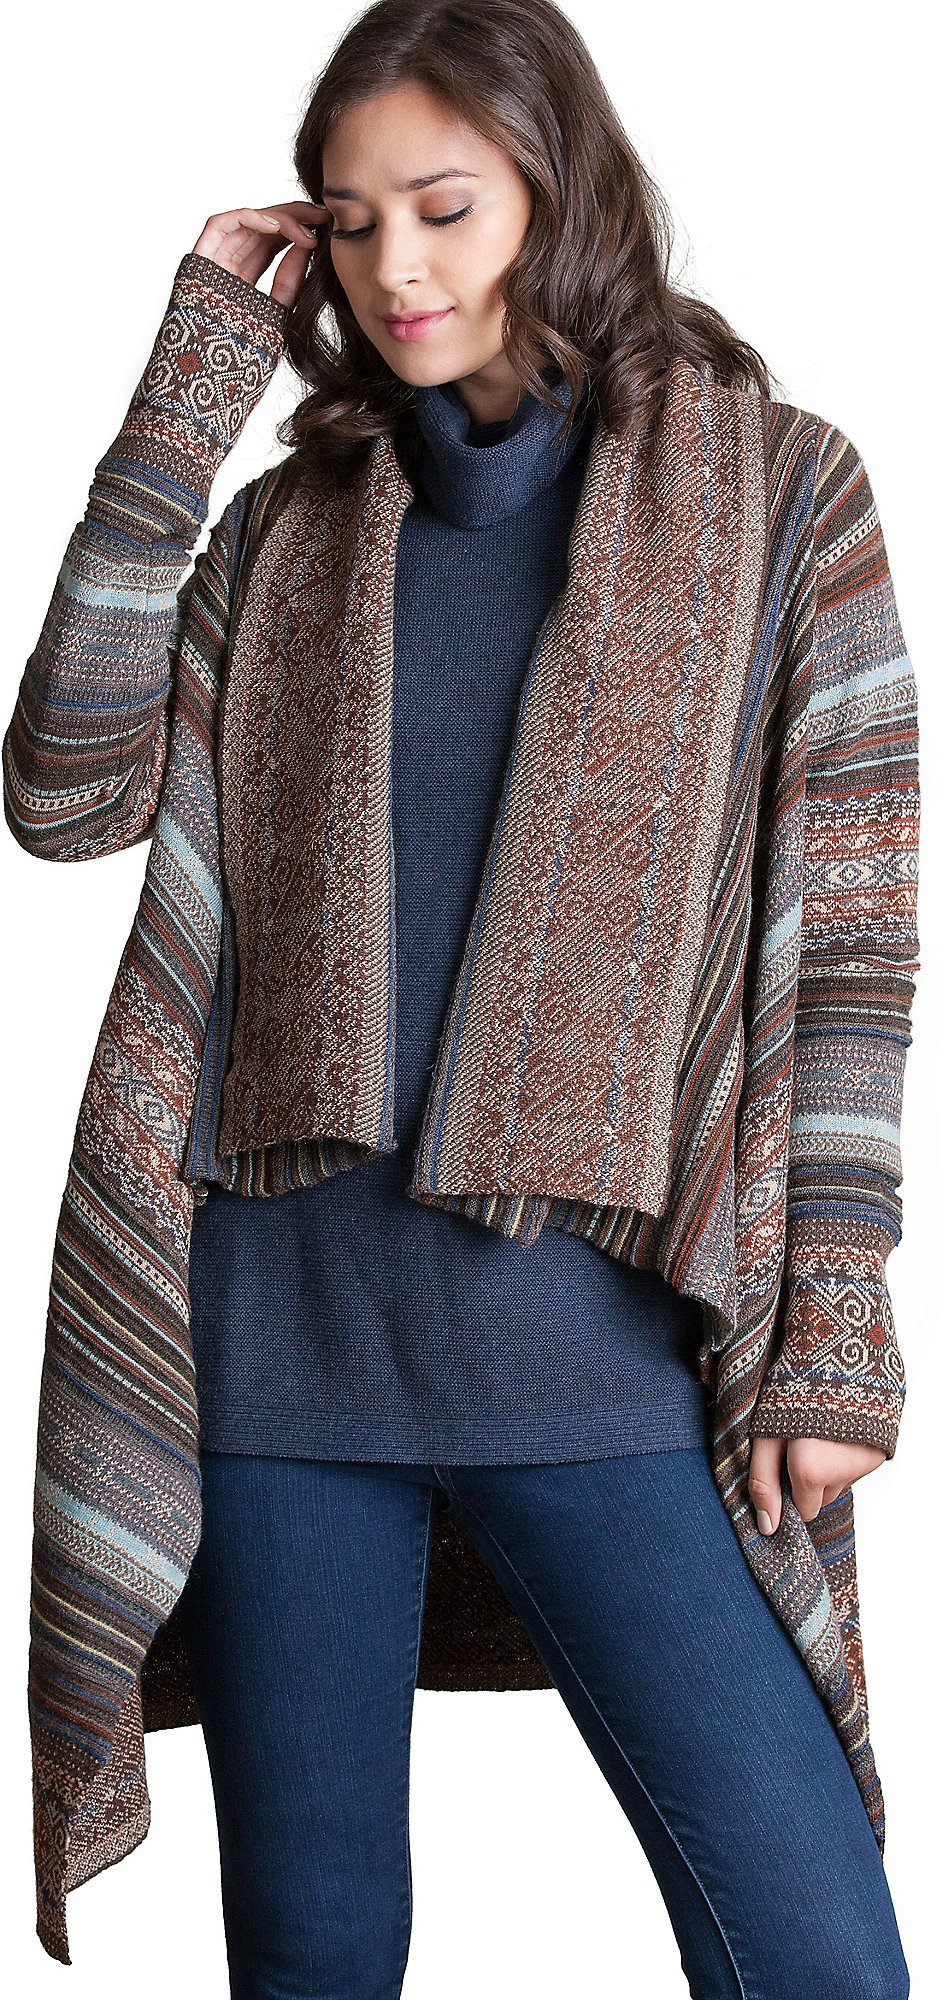 Overland Sheepskin Co. Camila Peruvian Alpaca Wool Open Sweater, Brown/Multi, Size Small/Medium (4-8)